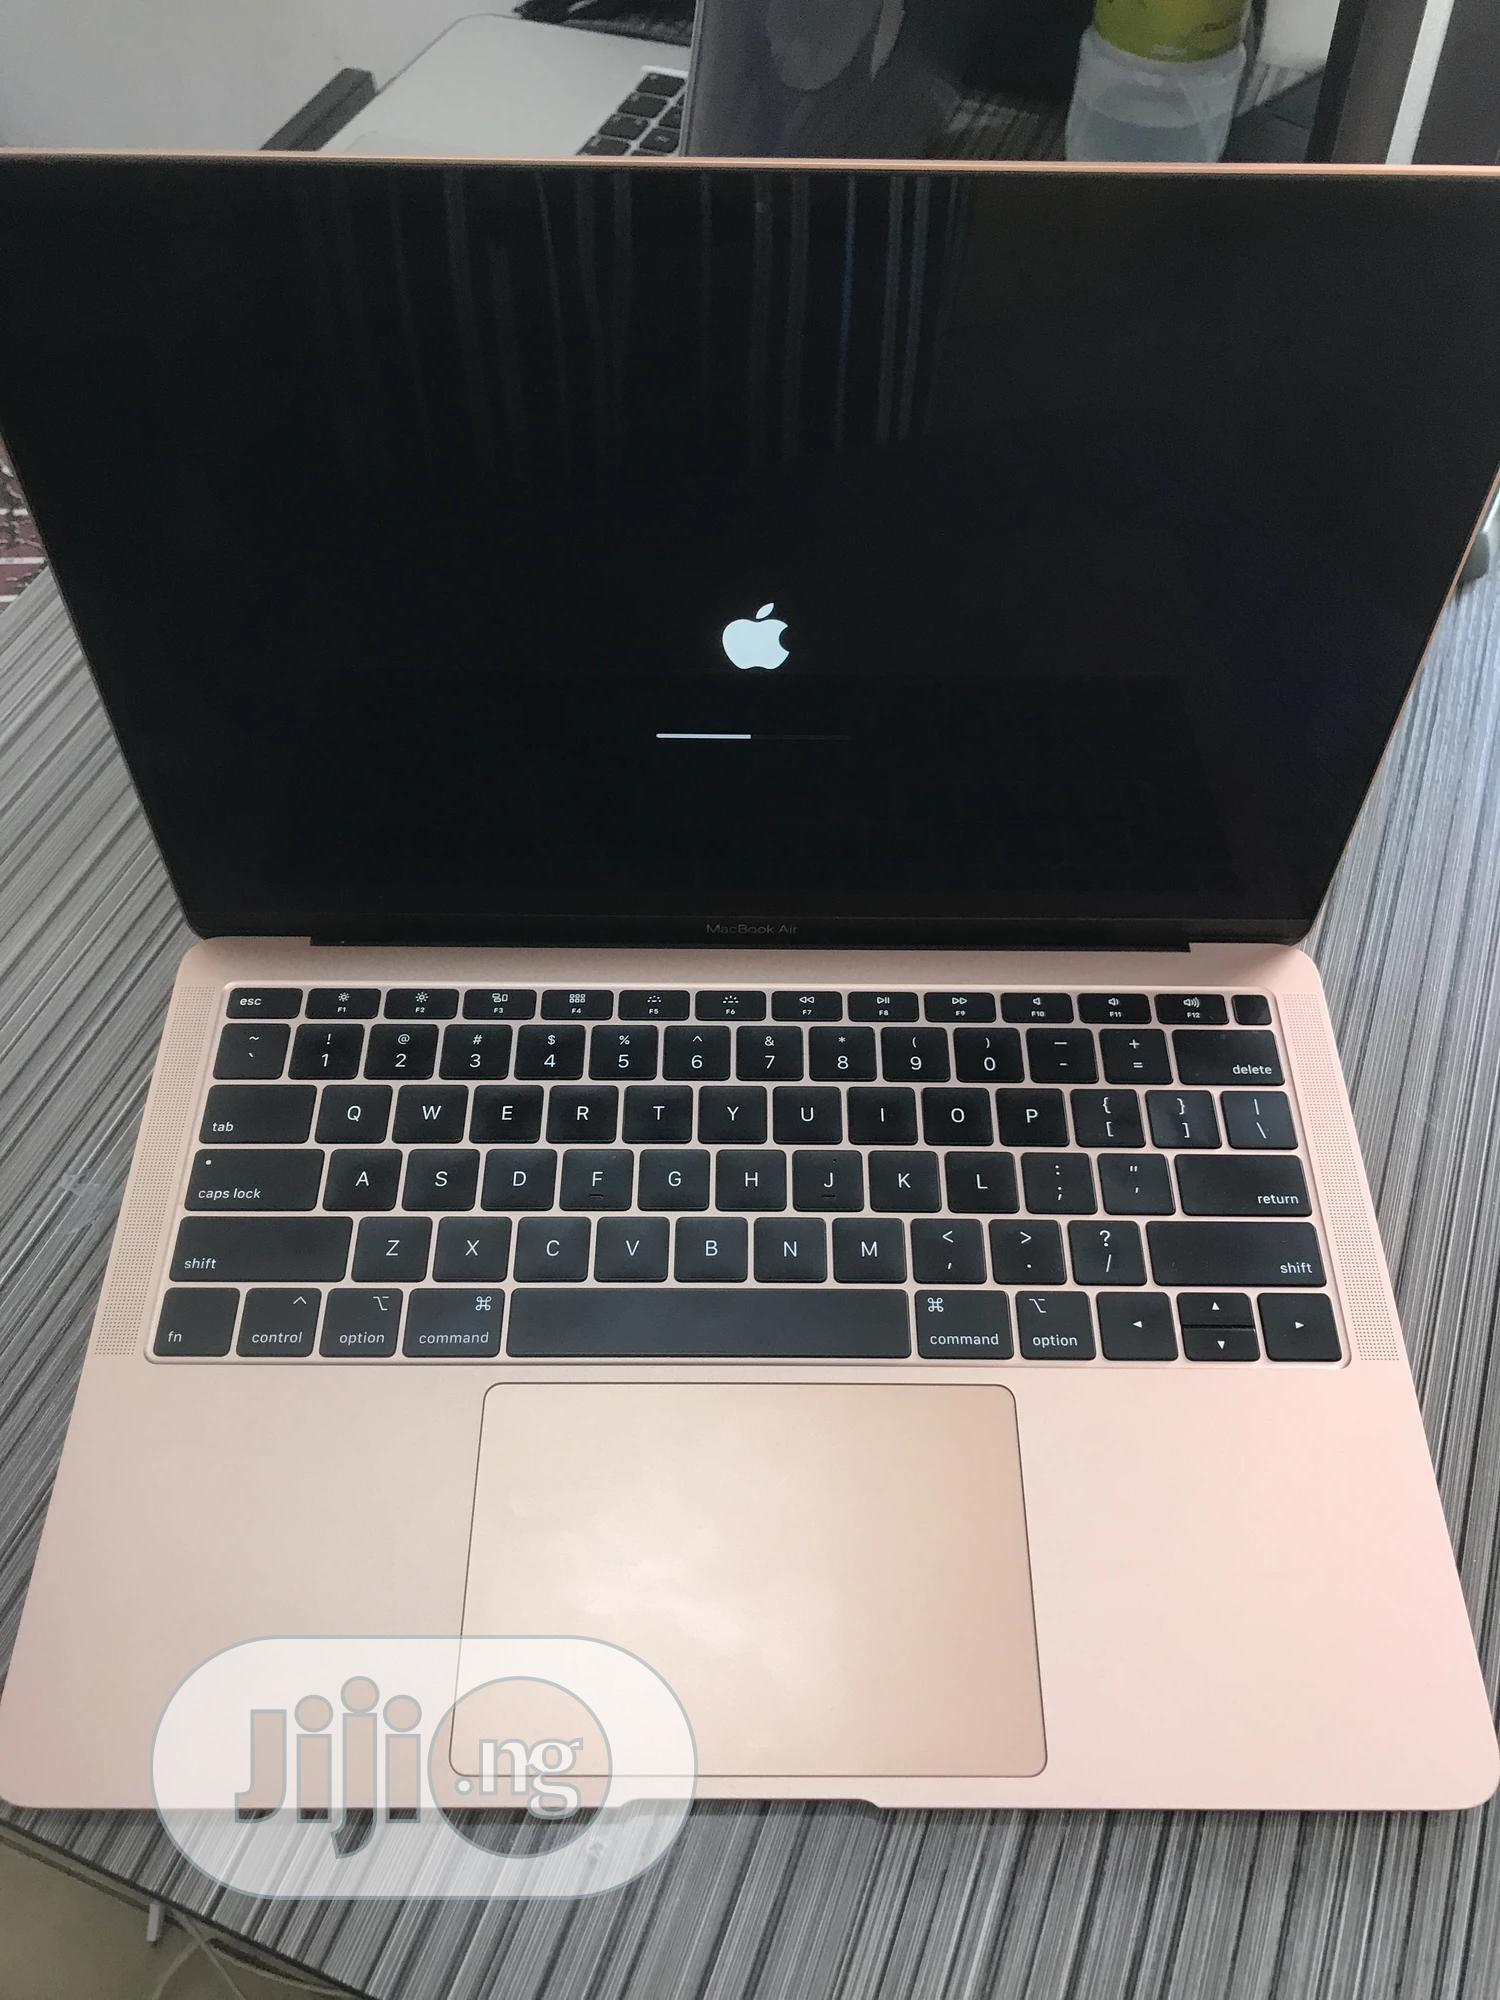 Laptop Apple MacBook Air 8GB Intel Core i5 SSD 256GB | Laptops & Computers for sale in Wuse 2, Abuja (FCT) State, Nigeria